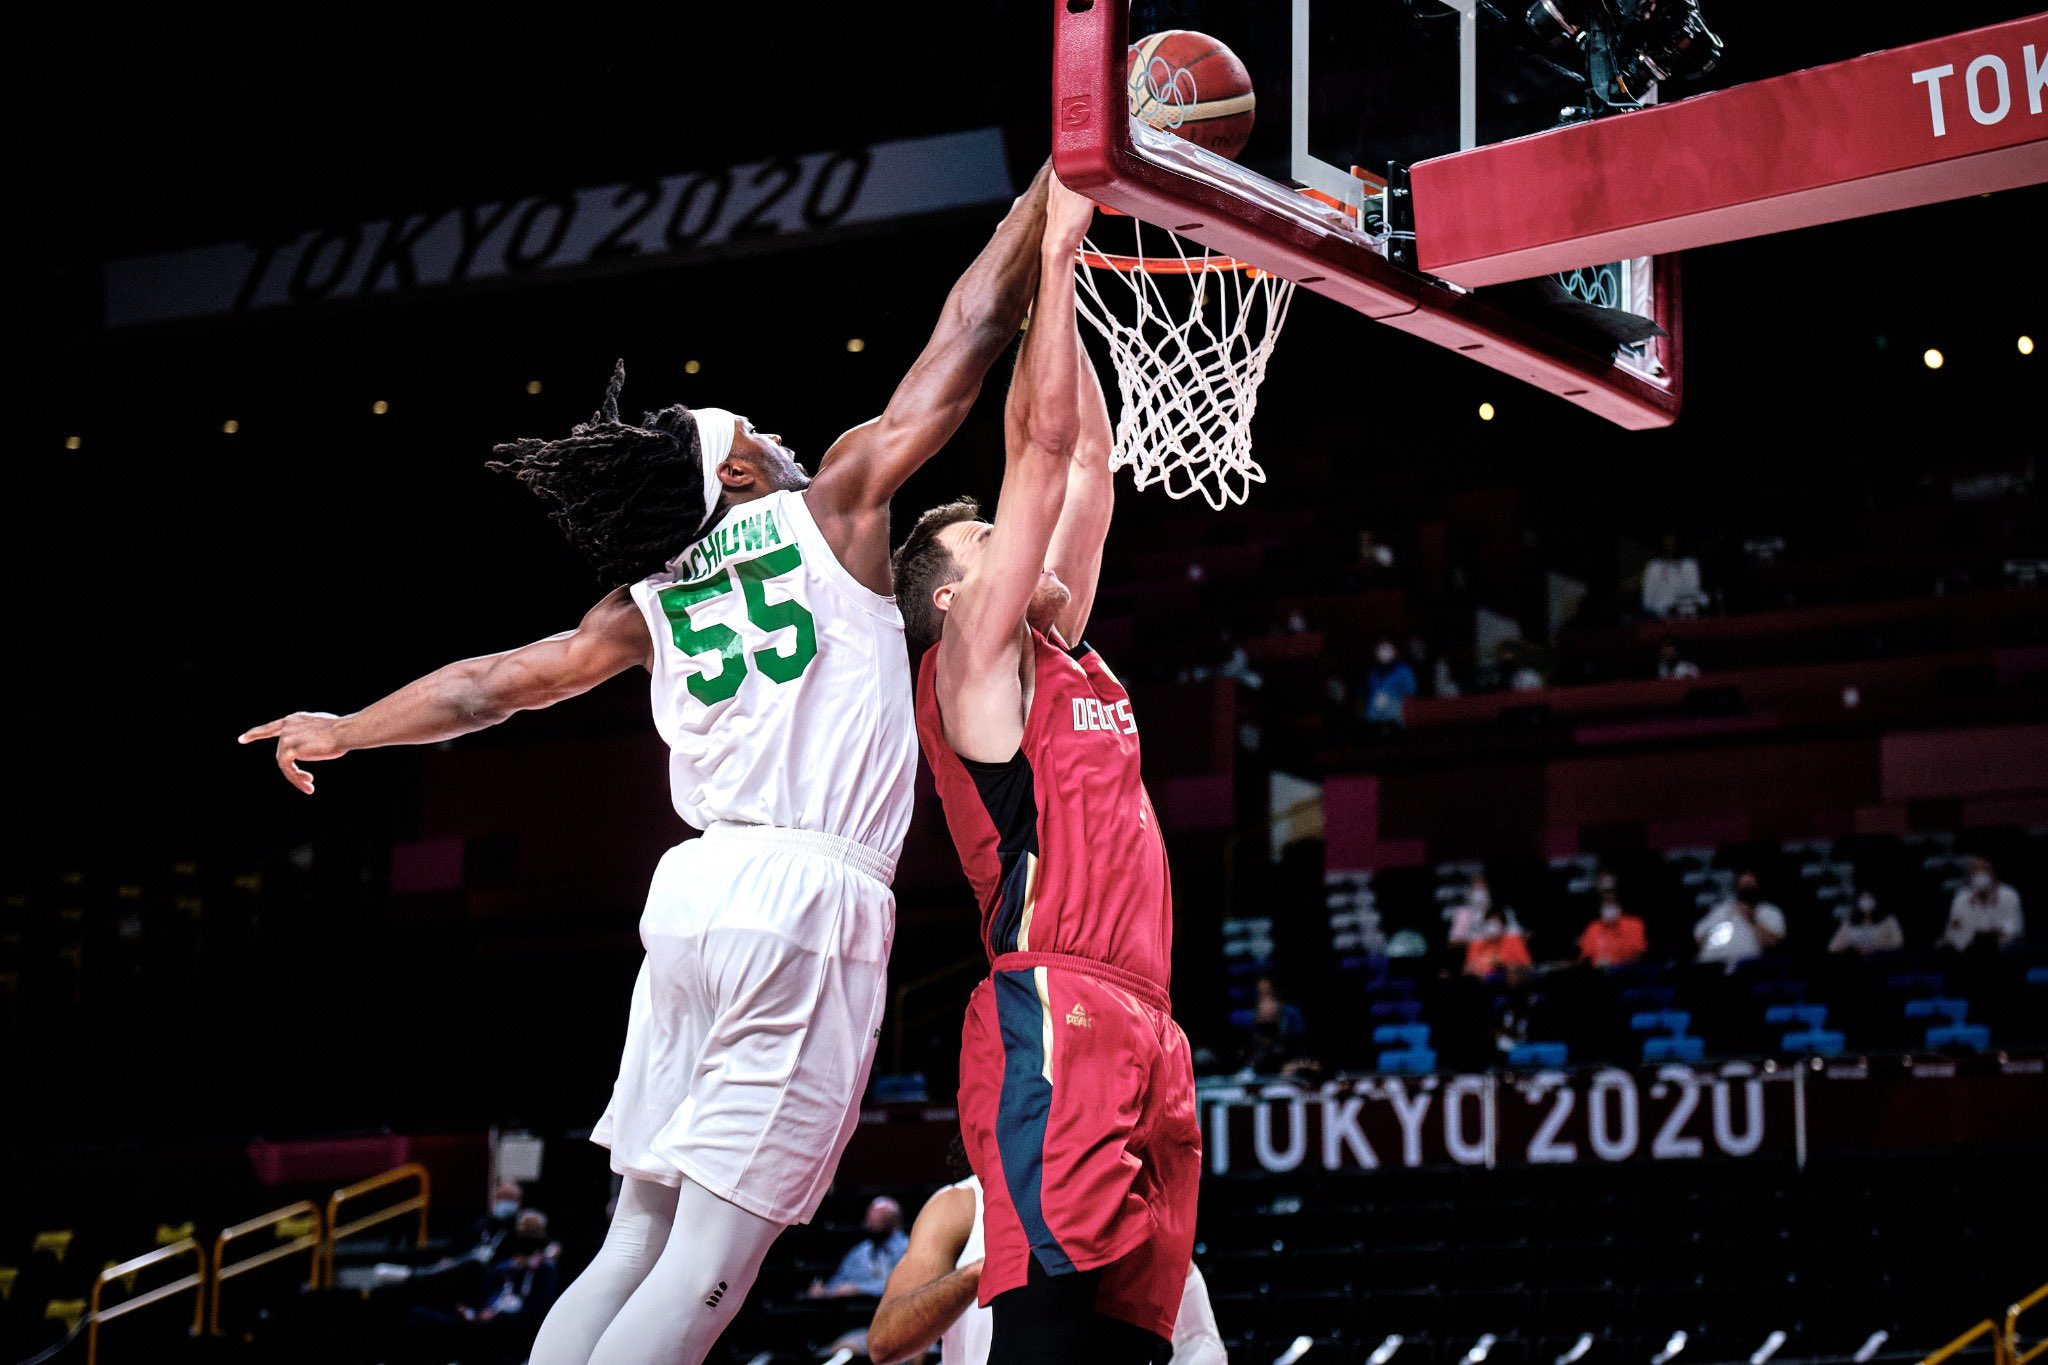 D'Tigers lose second match against Germany